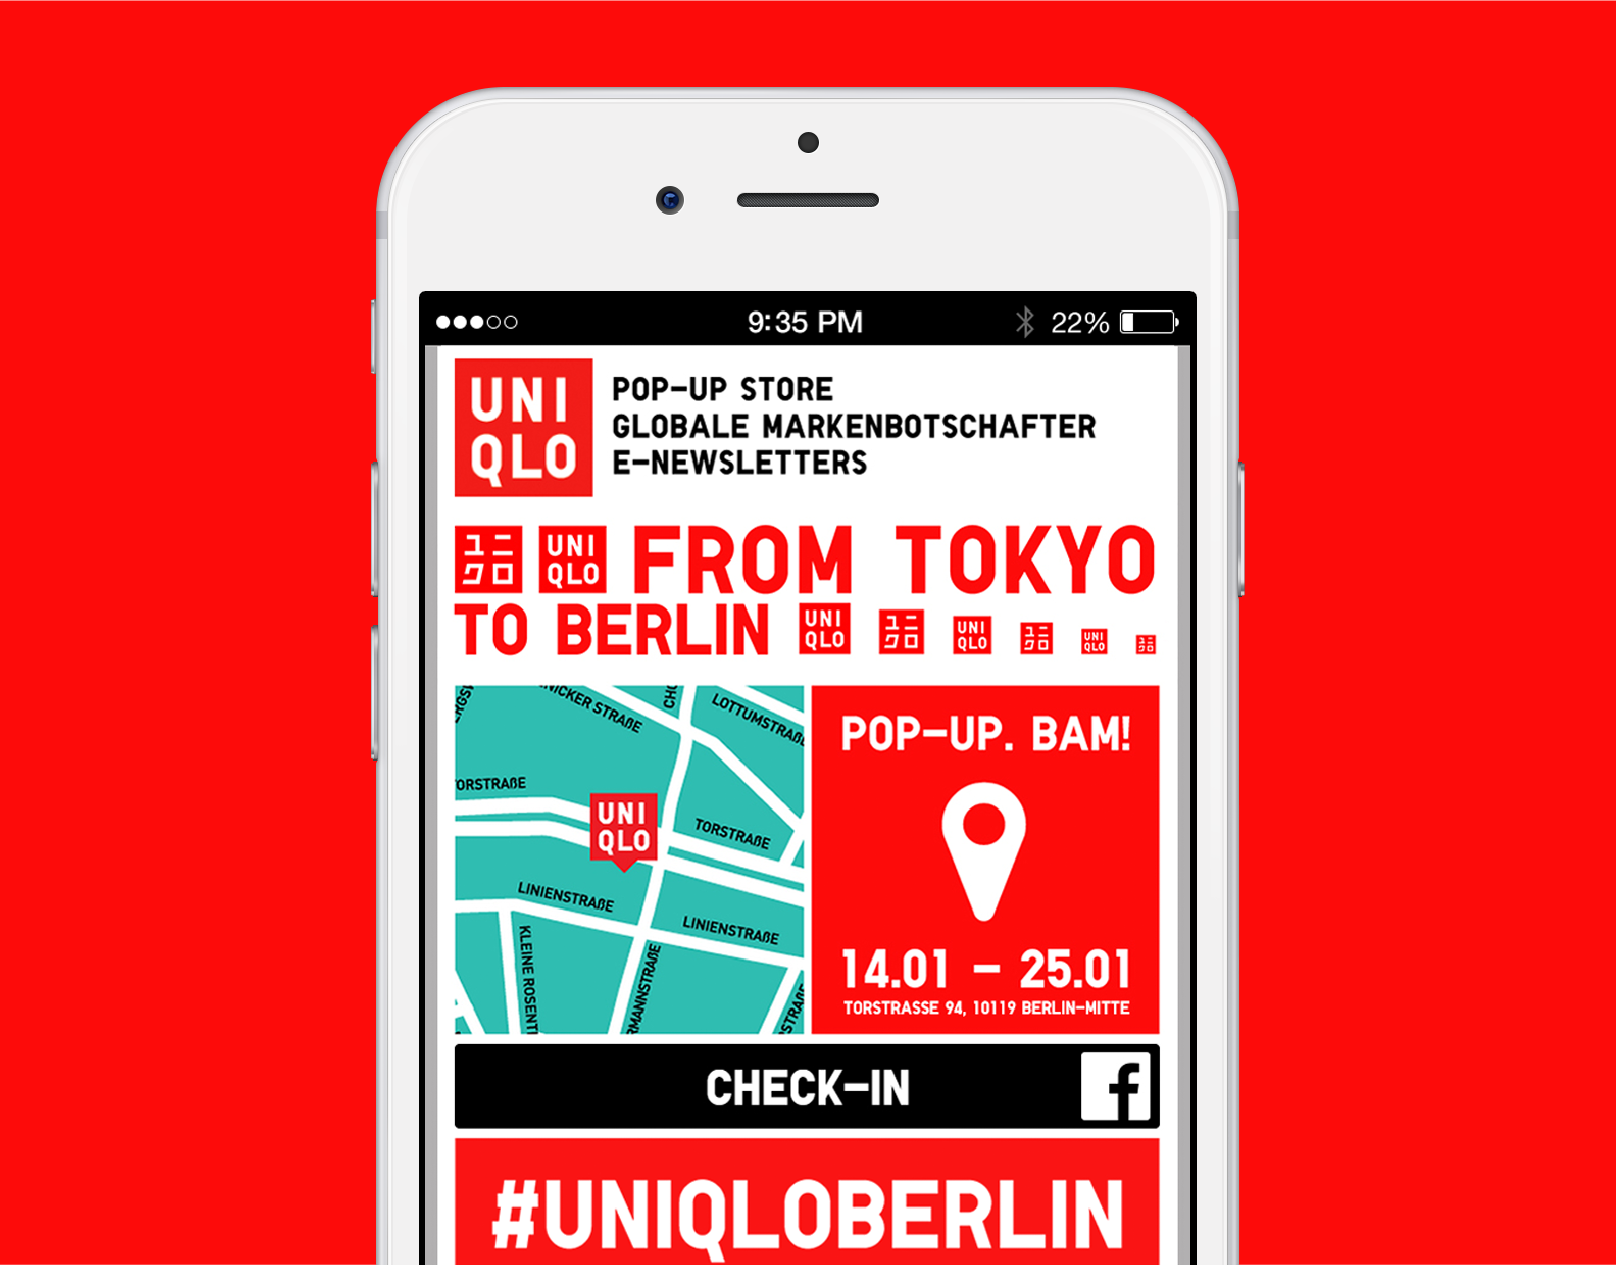 UNIQLO From Tokyo to Berlin